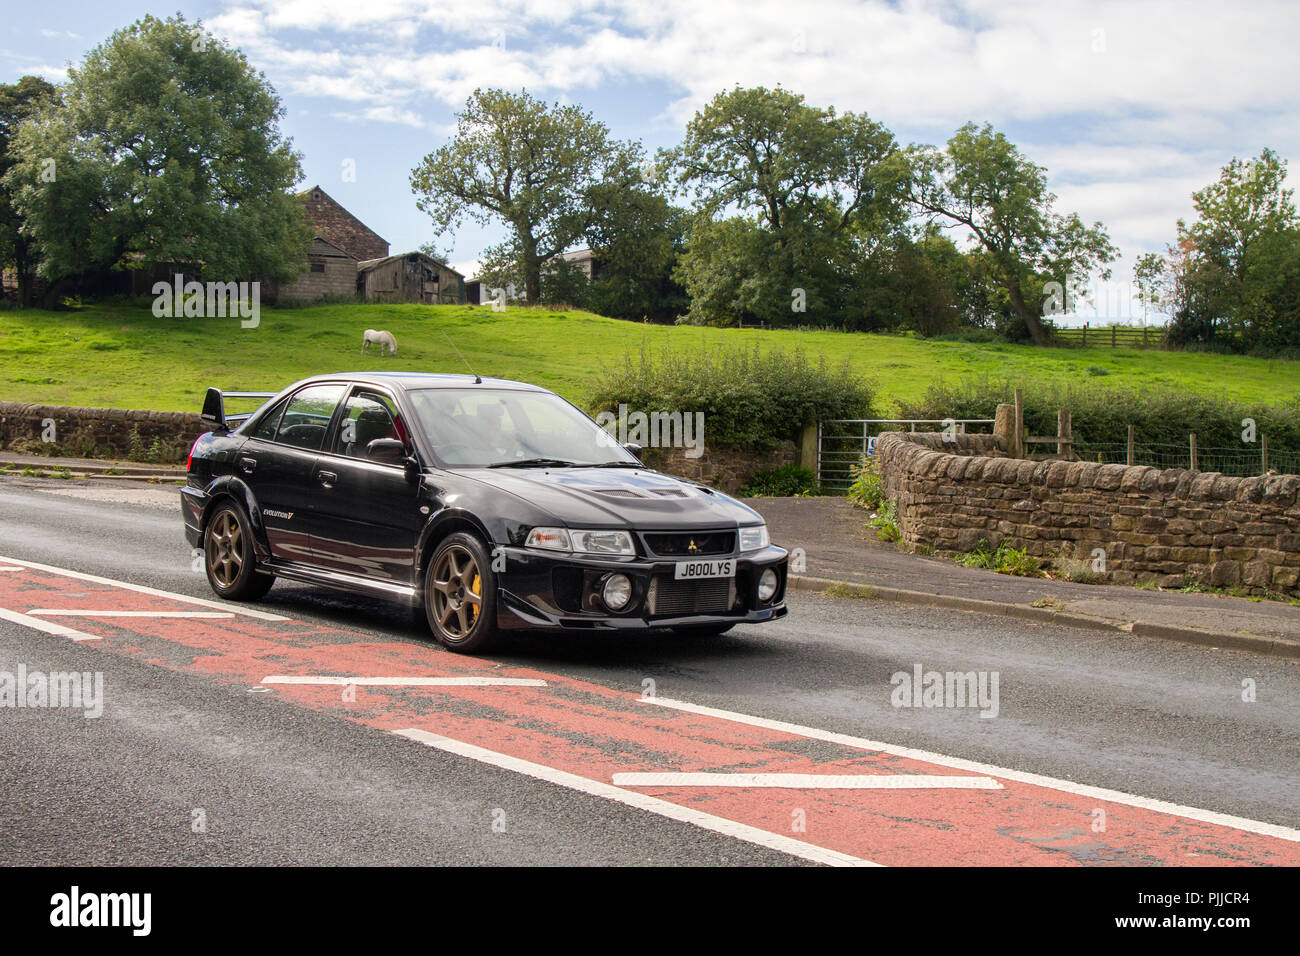 J800lys Black Mitsubishi Lancer EVO V Classic, vintage, veteran, cars of yesteryear, restored collectibles at Hoghton Tower Class Cars Rally, UK Stock Photo